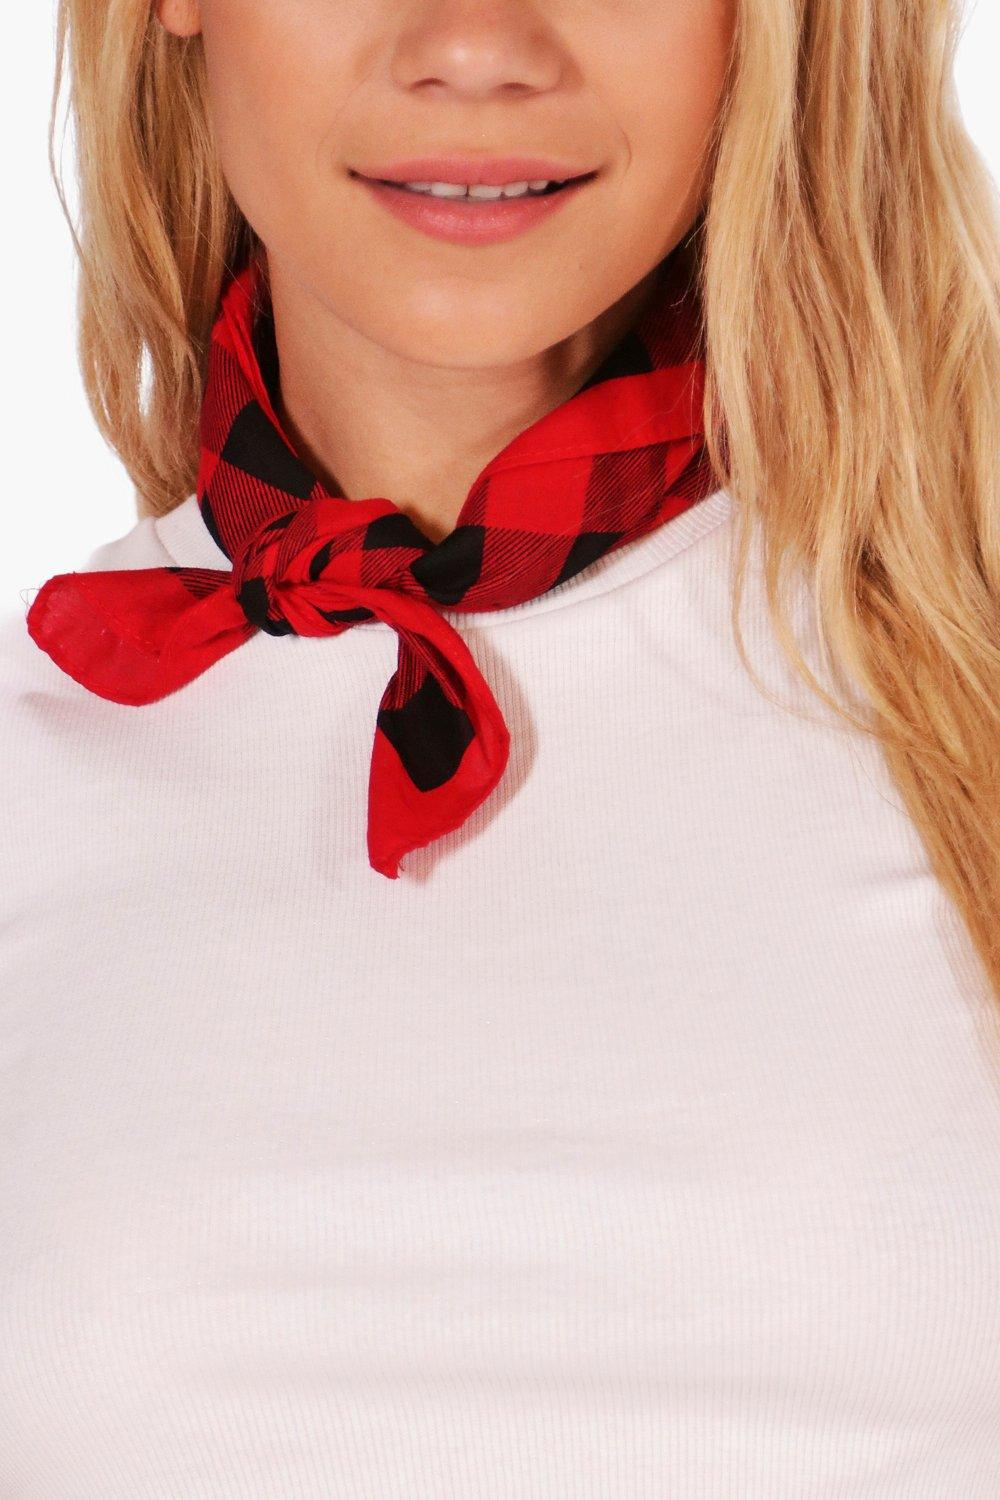 Gingham Check Bandana Necktie - red - Jenni Gingha